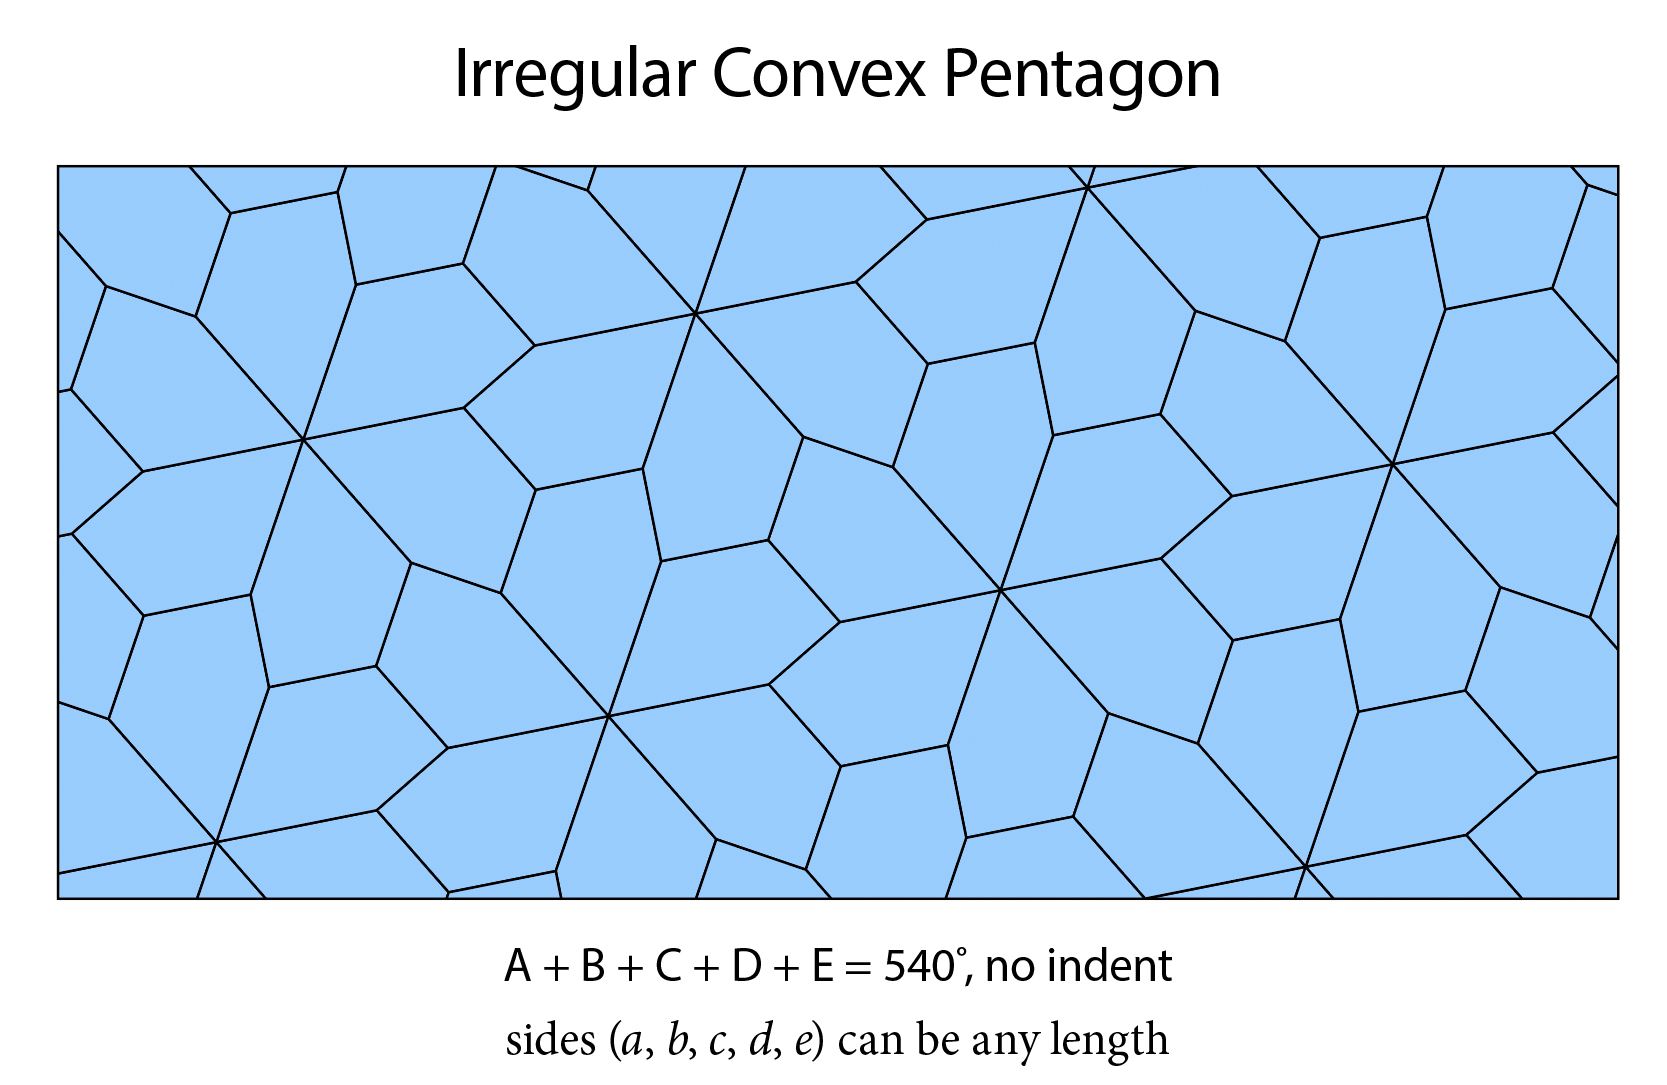 A tesselating pattern from an irregular convex pentagon.